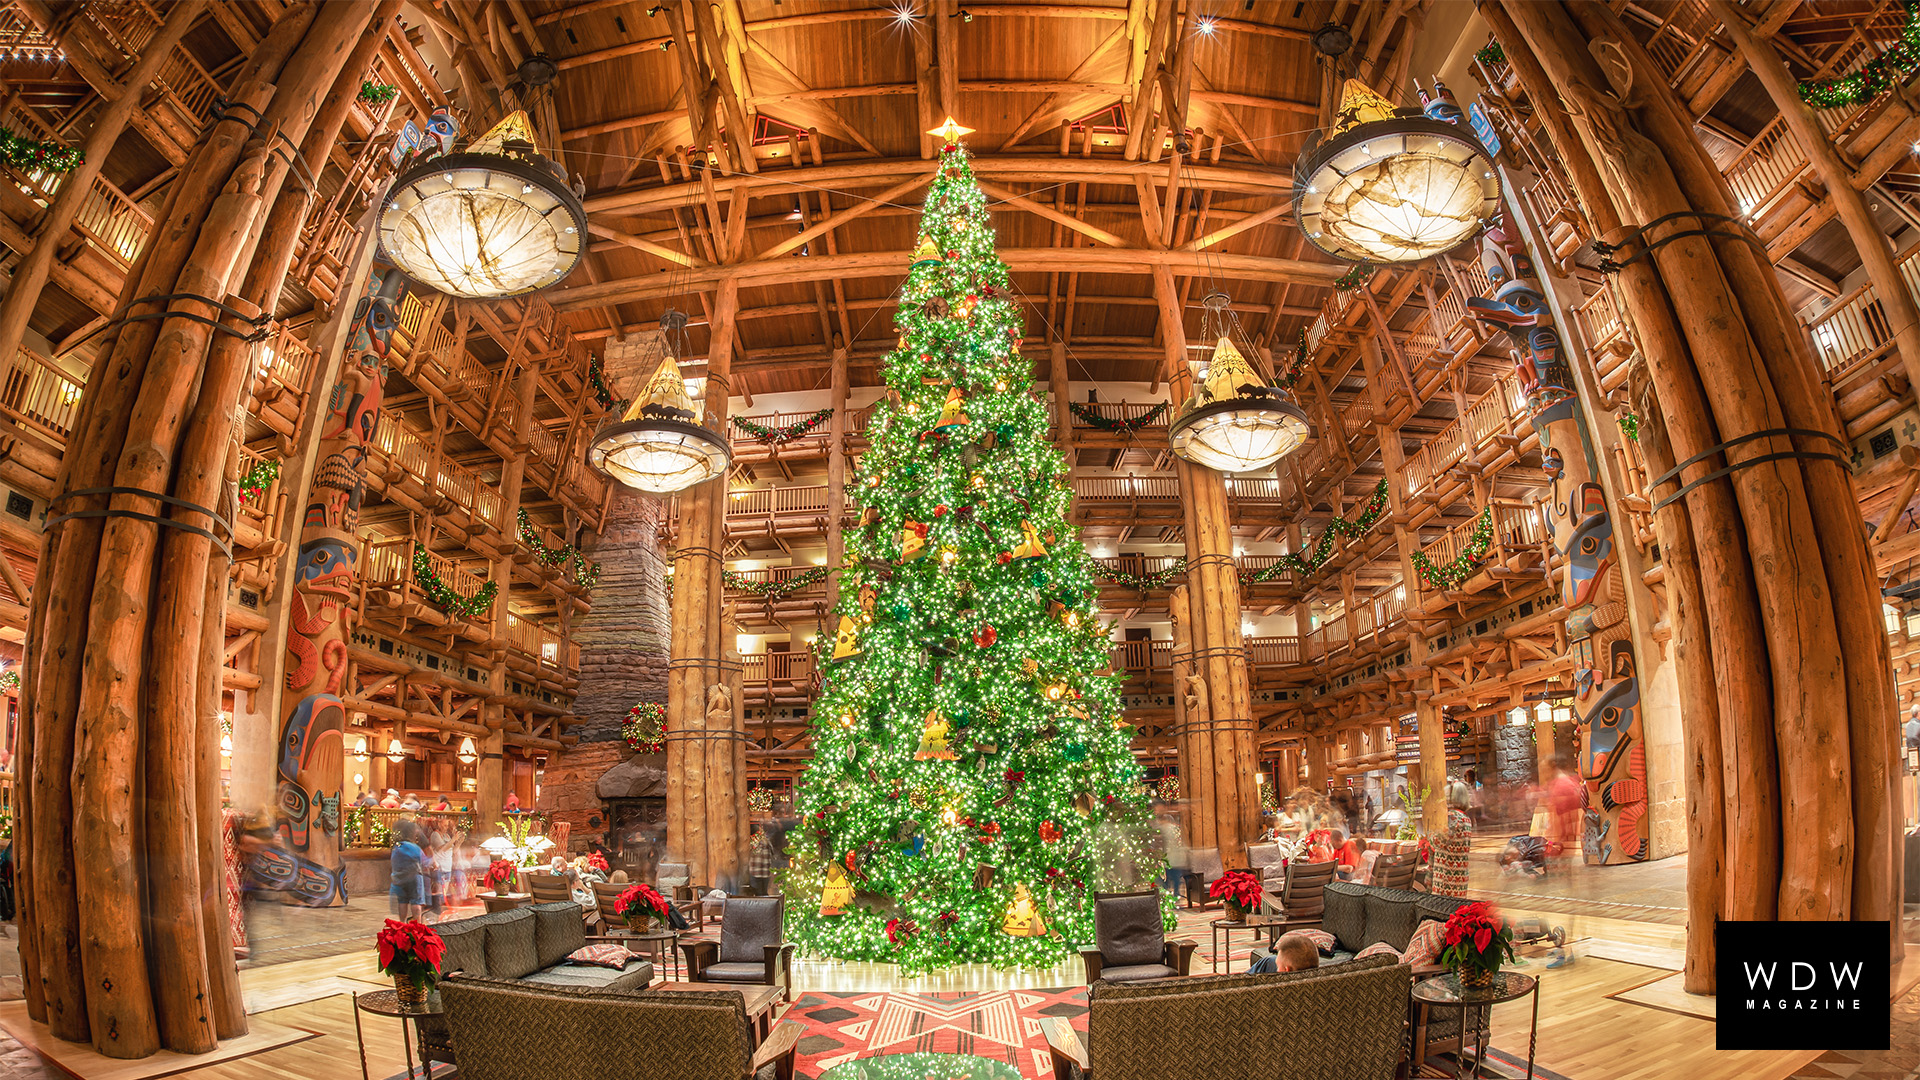 Download These Free Christmas Disney World Zoom Backgrounds